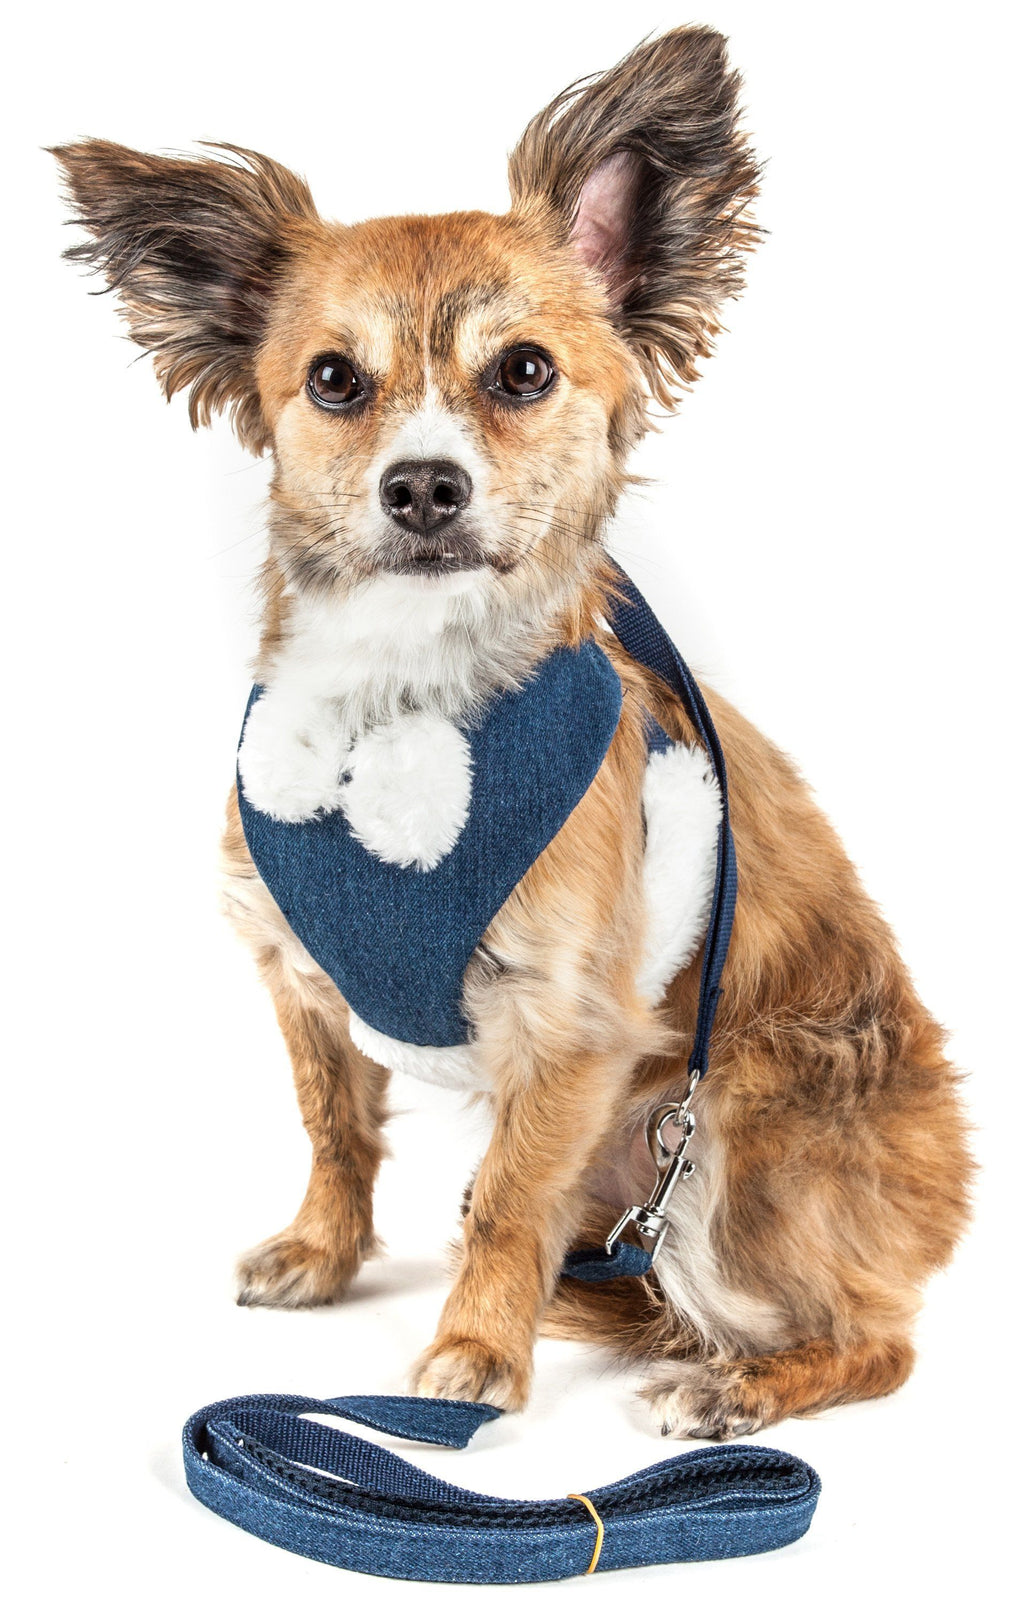 Pet Life ®  Luxe 'Pom Draper' 2-In-1 Mesh Reversed Adjustable Dog Harness-Leash W/ Pom-Pom Bowtie X-Small